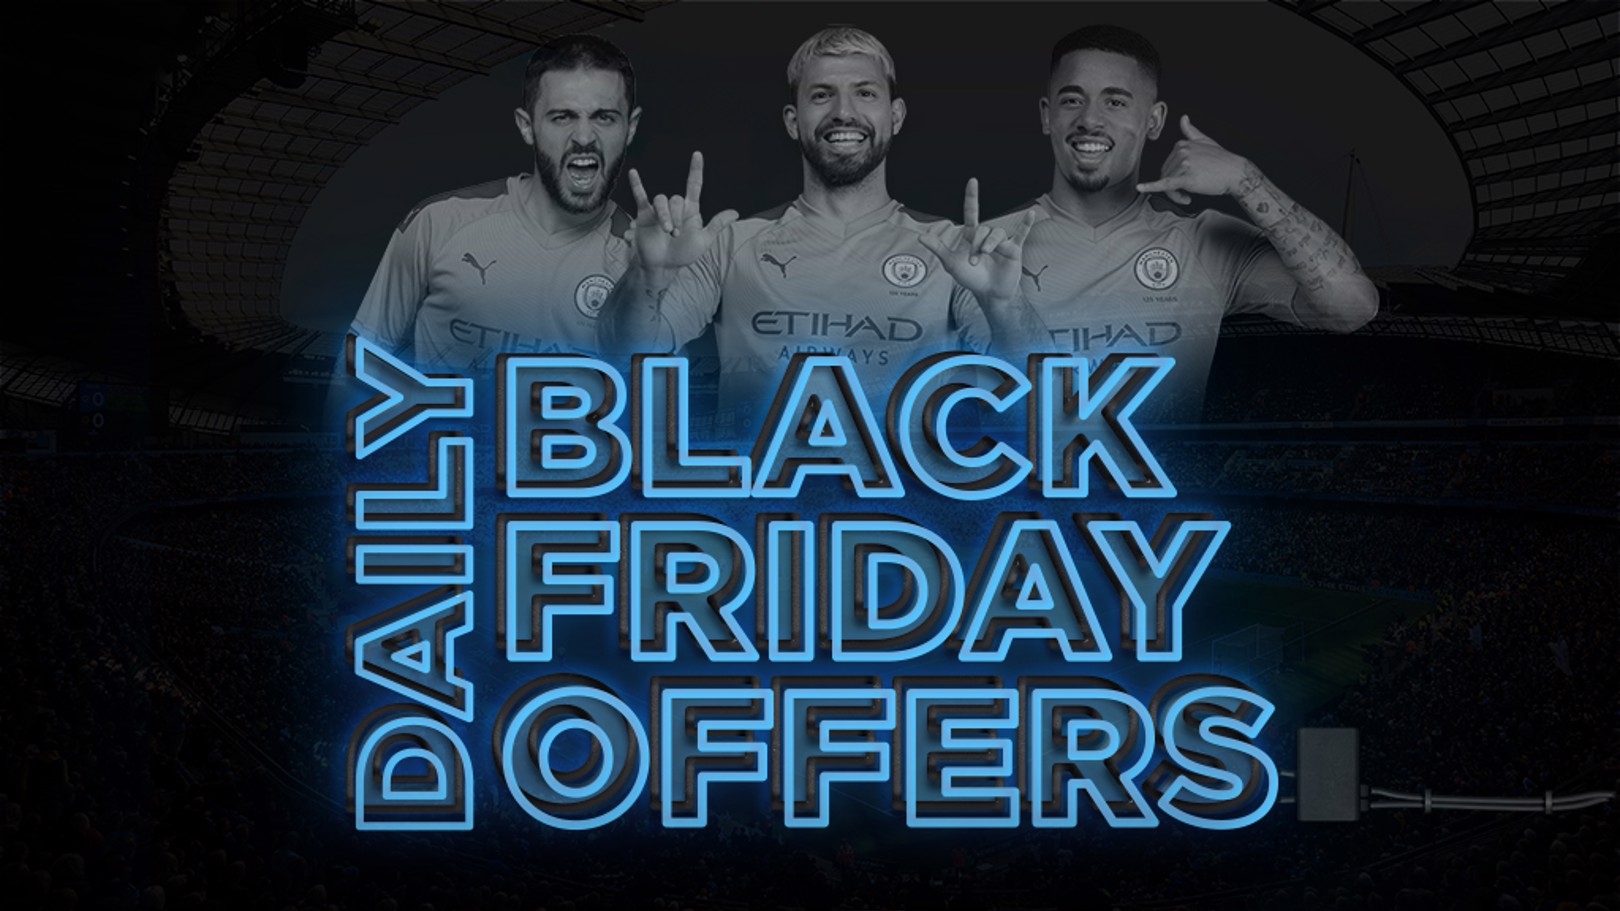 Register for daily Black Friday offers!